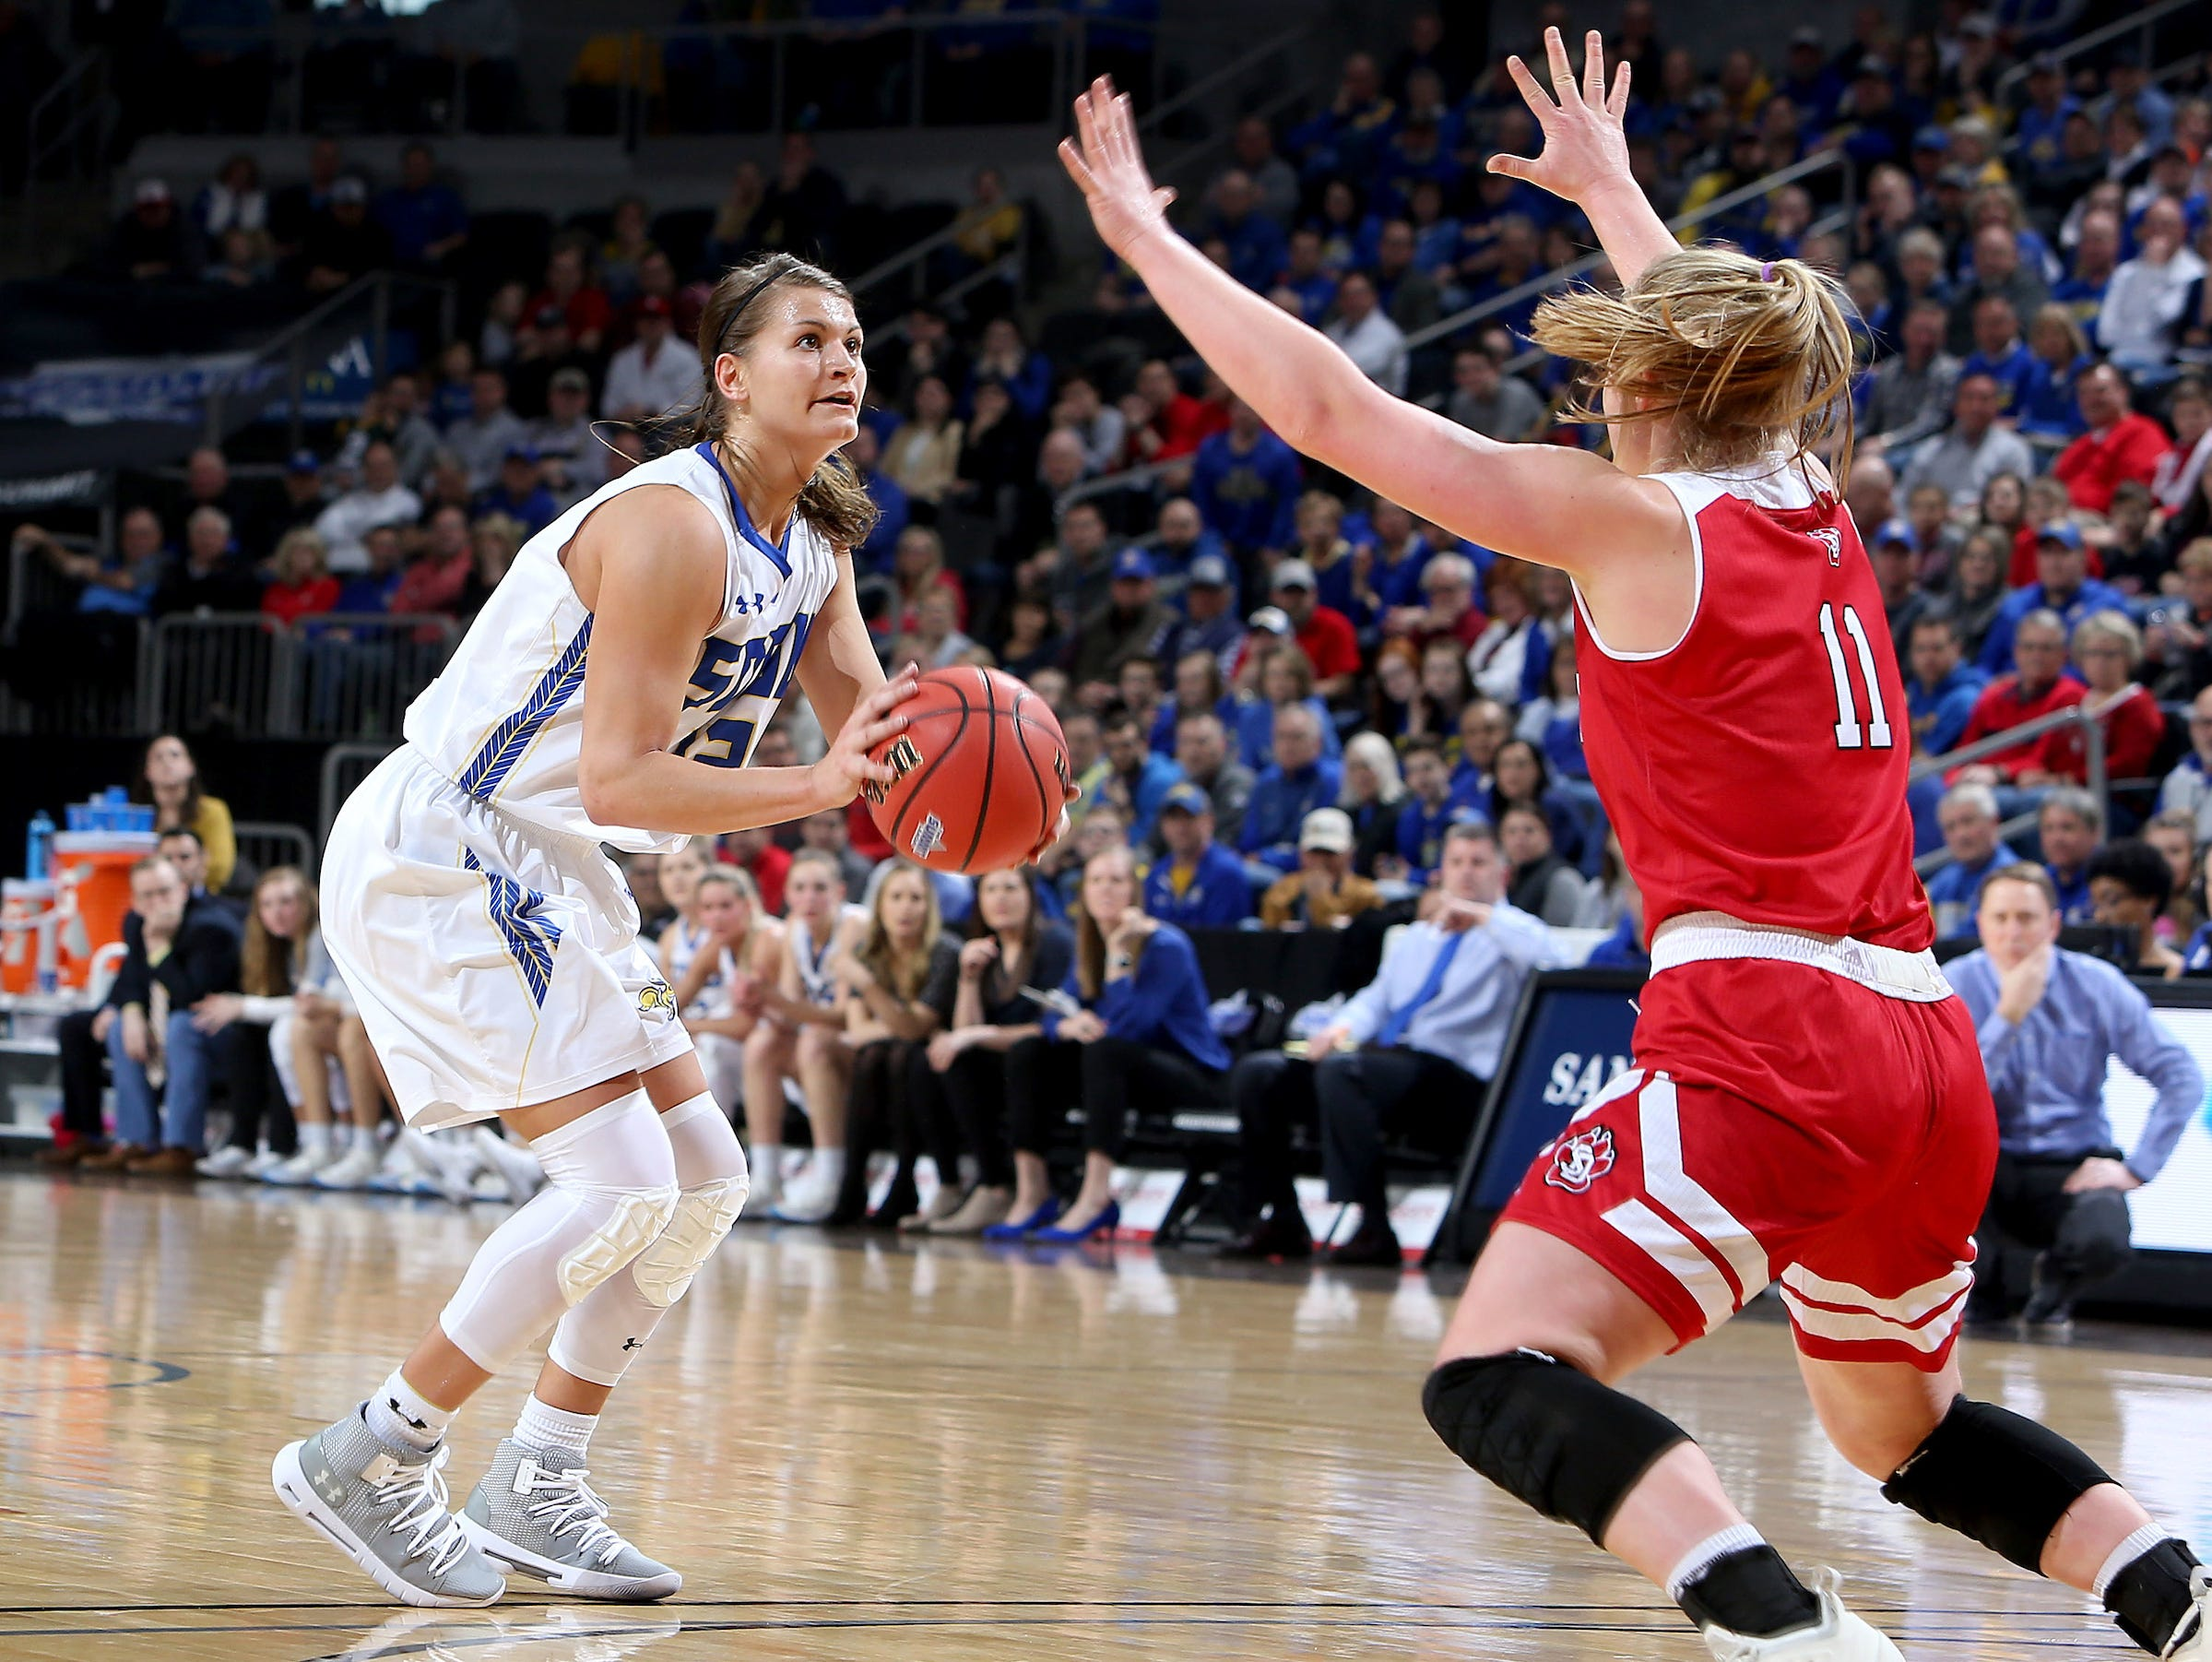 SIOUX FALLS, SD - MARCH 11: Macy Miller #12 from South Dakota State shoots a jumper over the hands of Monica Arens #11 from South Dakota at the 2019 Summit League Basketball Tournament at the Denny Sanford Premier Center in Sioux Falls. (Photo by Dave Eggen/Inertia)